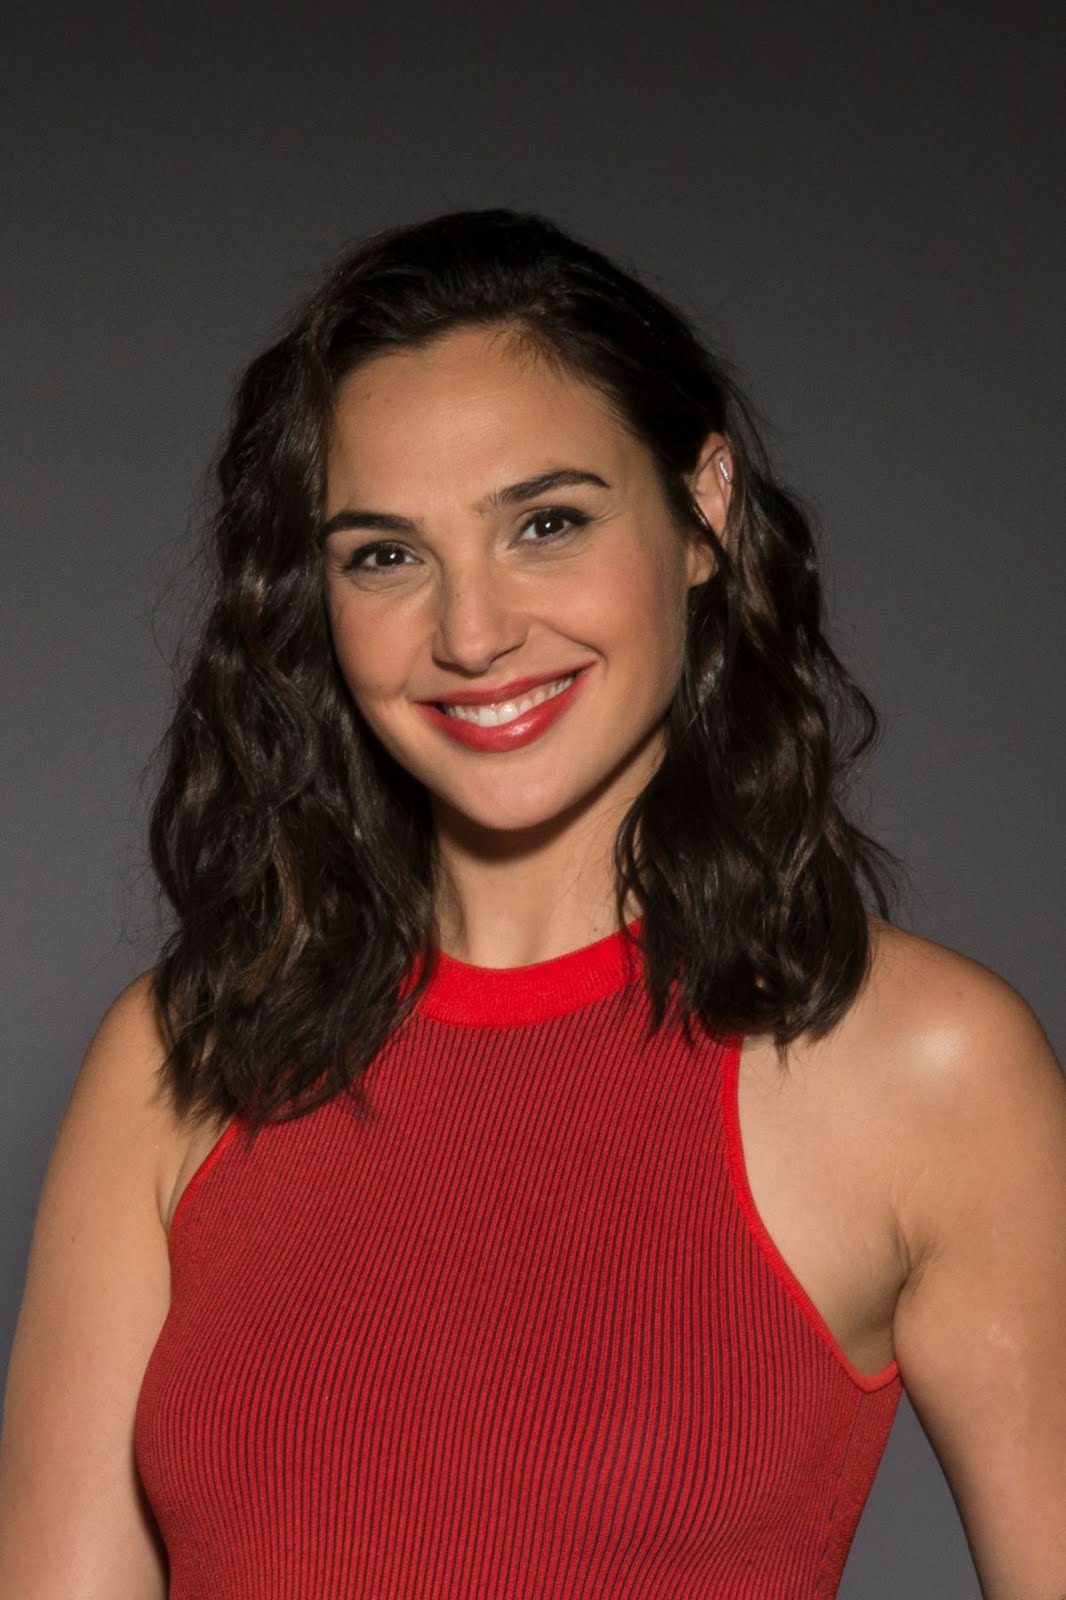 Gal Gadot Shoot in Red dress for Associated Press, 2017